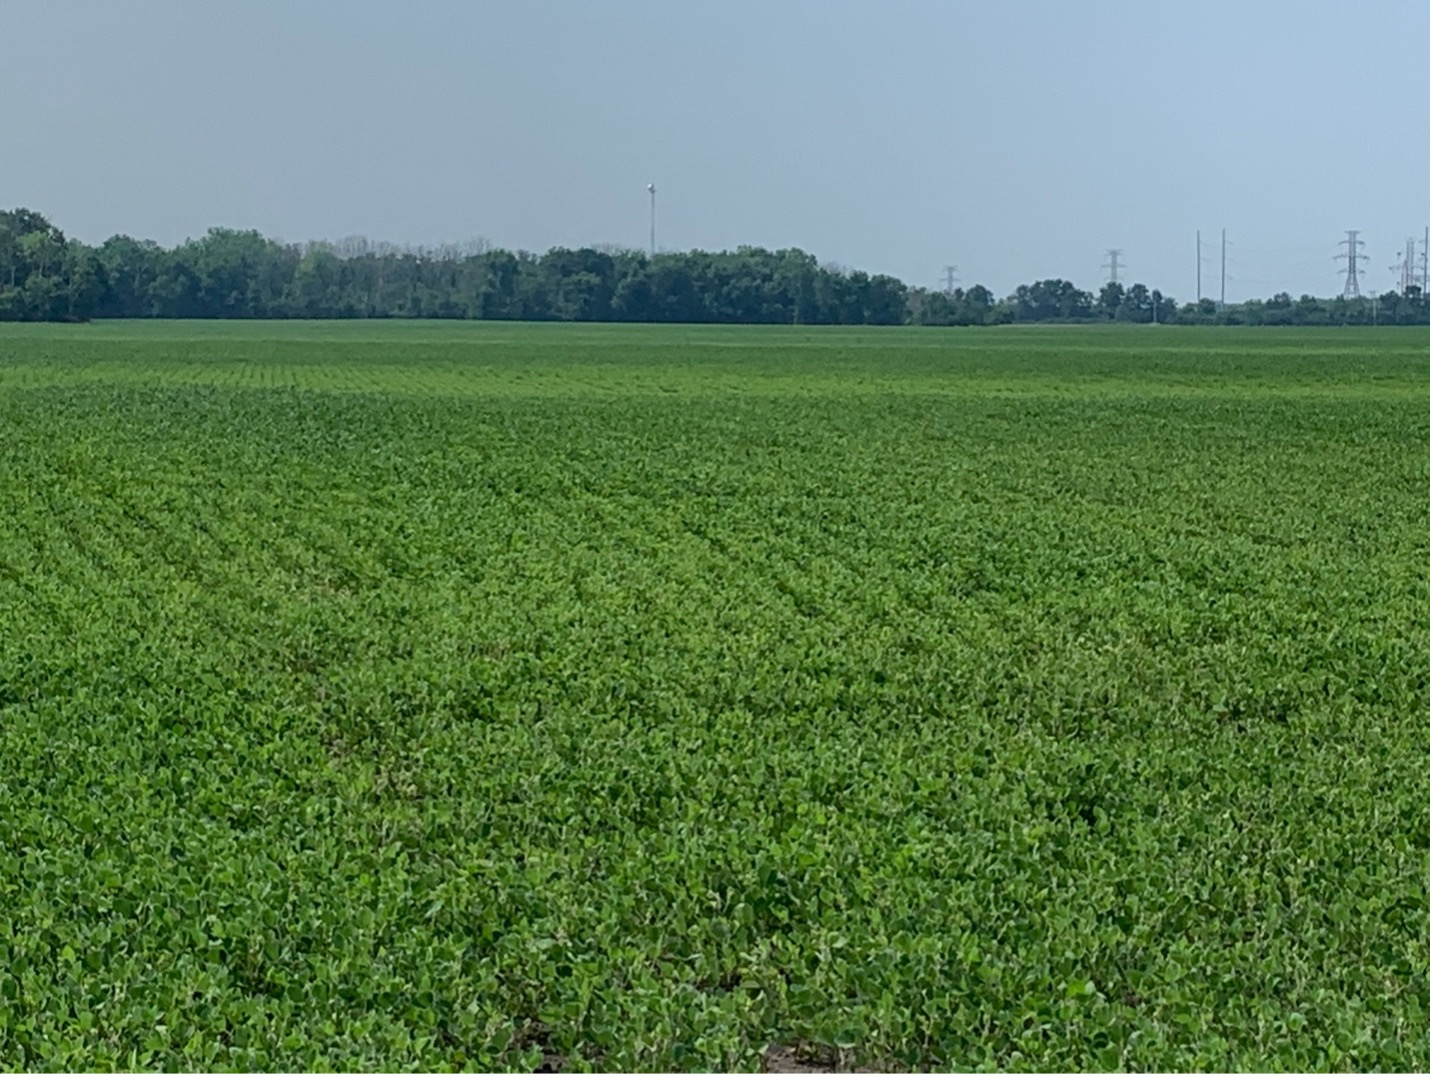 Figure 2. Field variation of soybean due to saturated and ponded conditions. Off-green to highlighter green soybeans have undergone saturated to ponded conditions to the point of causing root and nodule death. Dark green soybeans would be the more normal areas of growth and development.